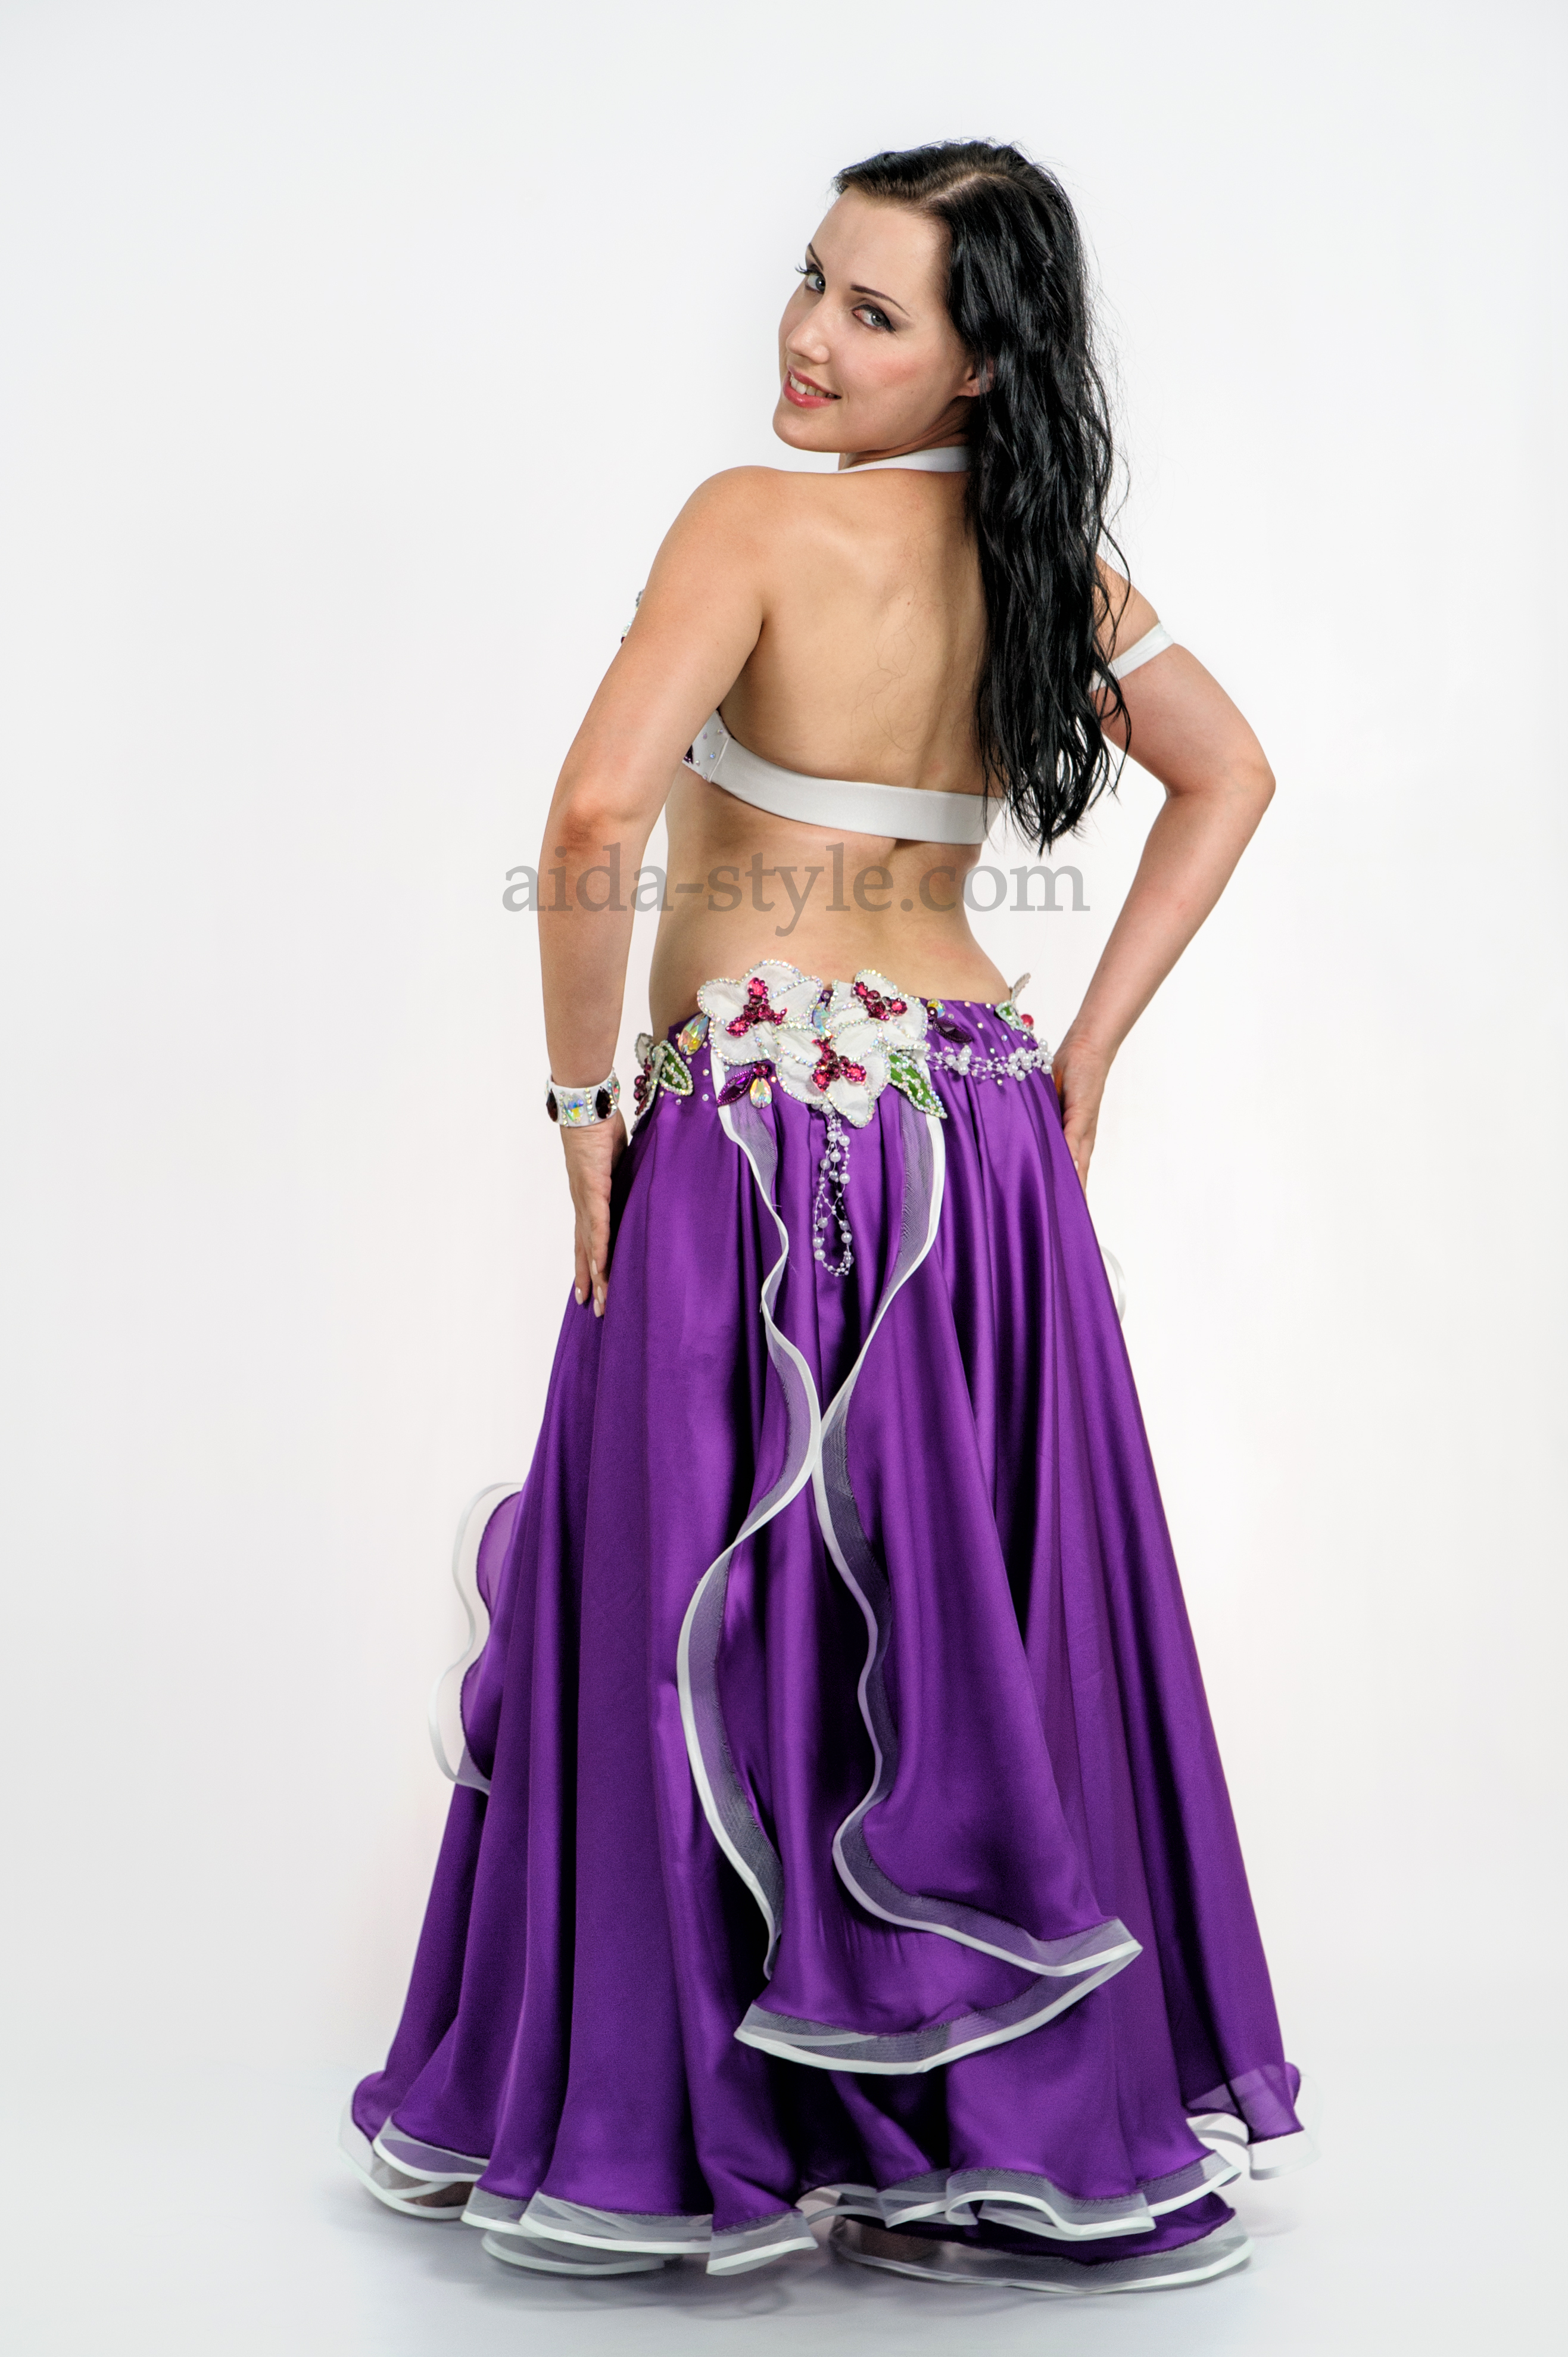 dcc520cdbee9 Violet professional belly dance costume with two-layered skirt and floweer  decoration on bra and